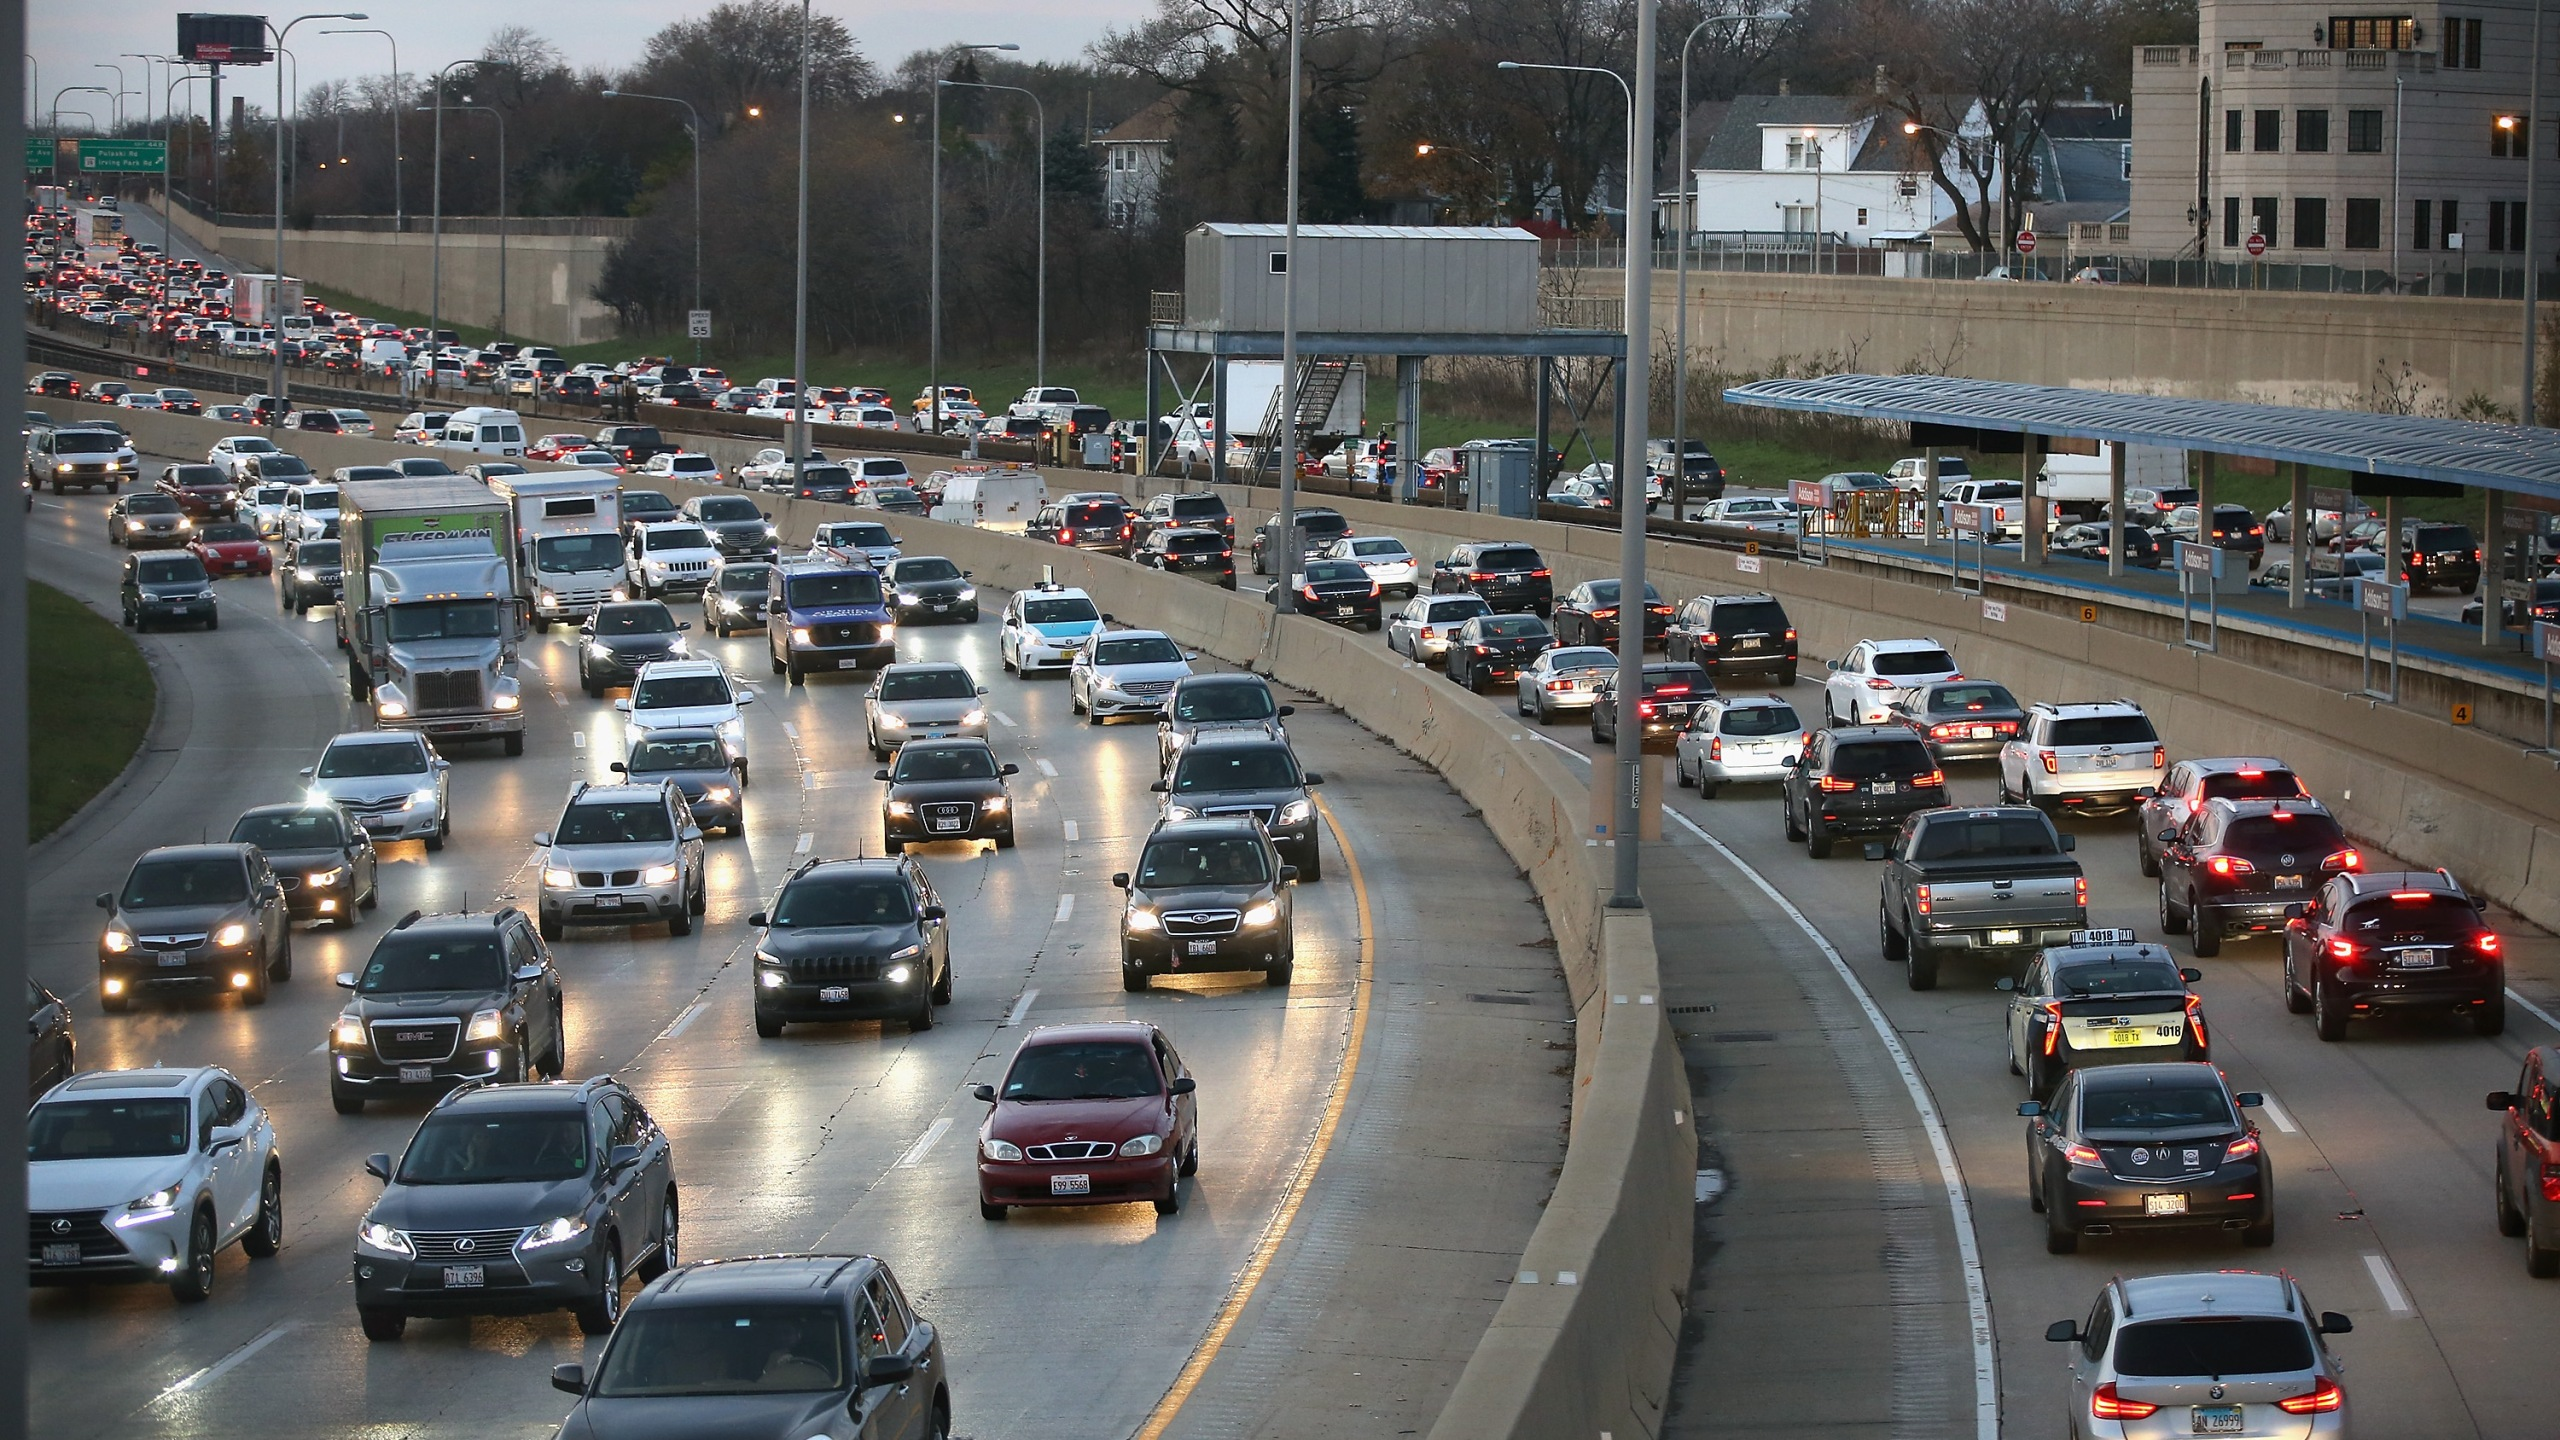 Travelers Say Highways Are Busy After Thanksgiving Holiday Wvns